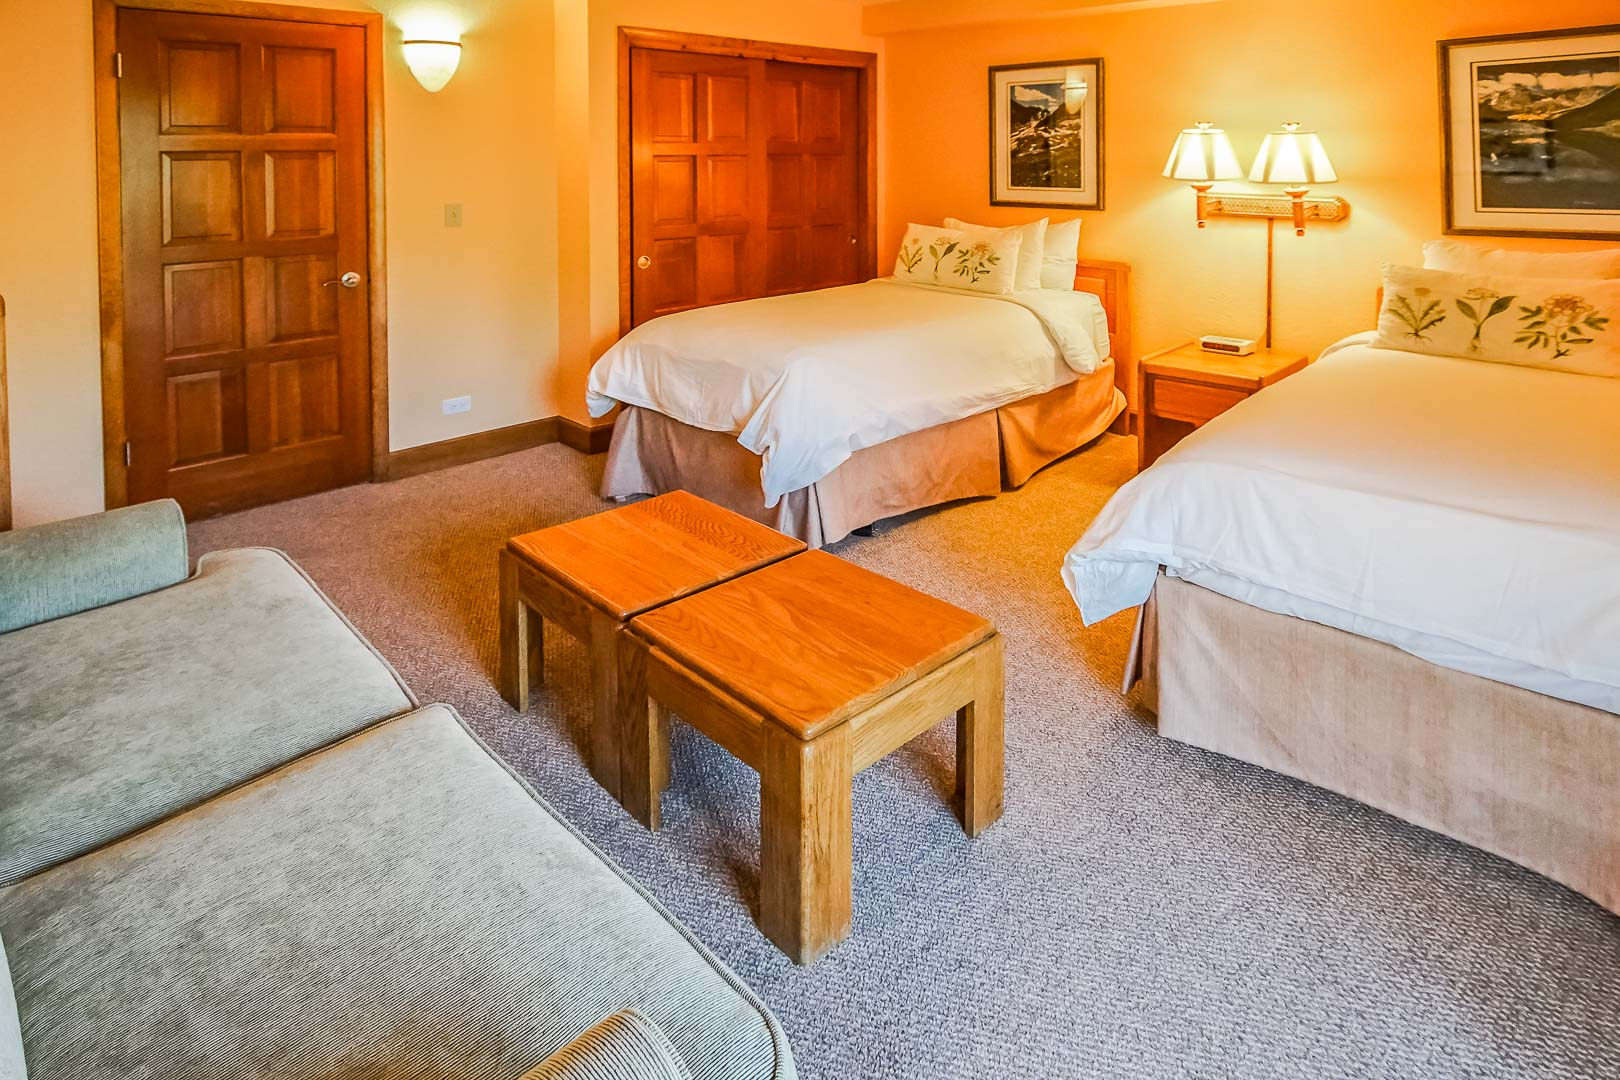 A spacious bedroom with double beds at VRI's Cedar at Streamside in Colorado.